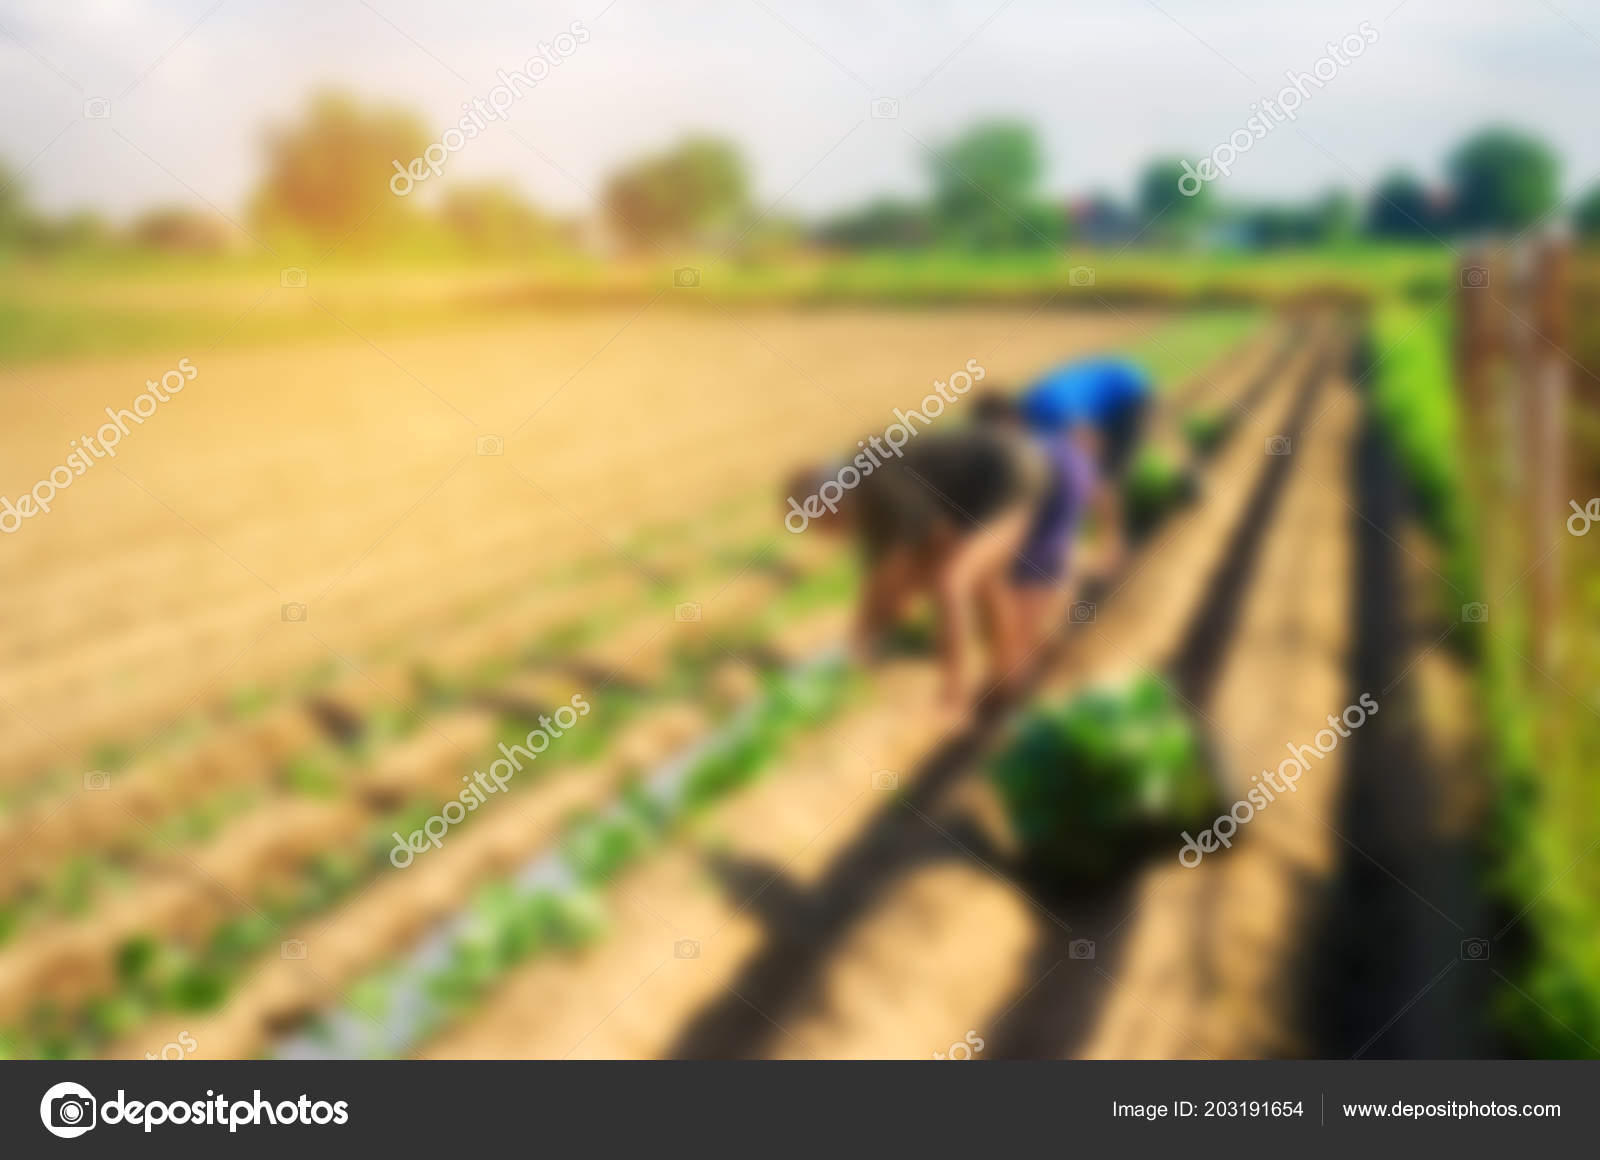 background information in world agriculture